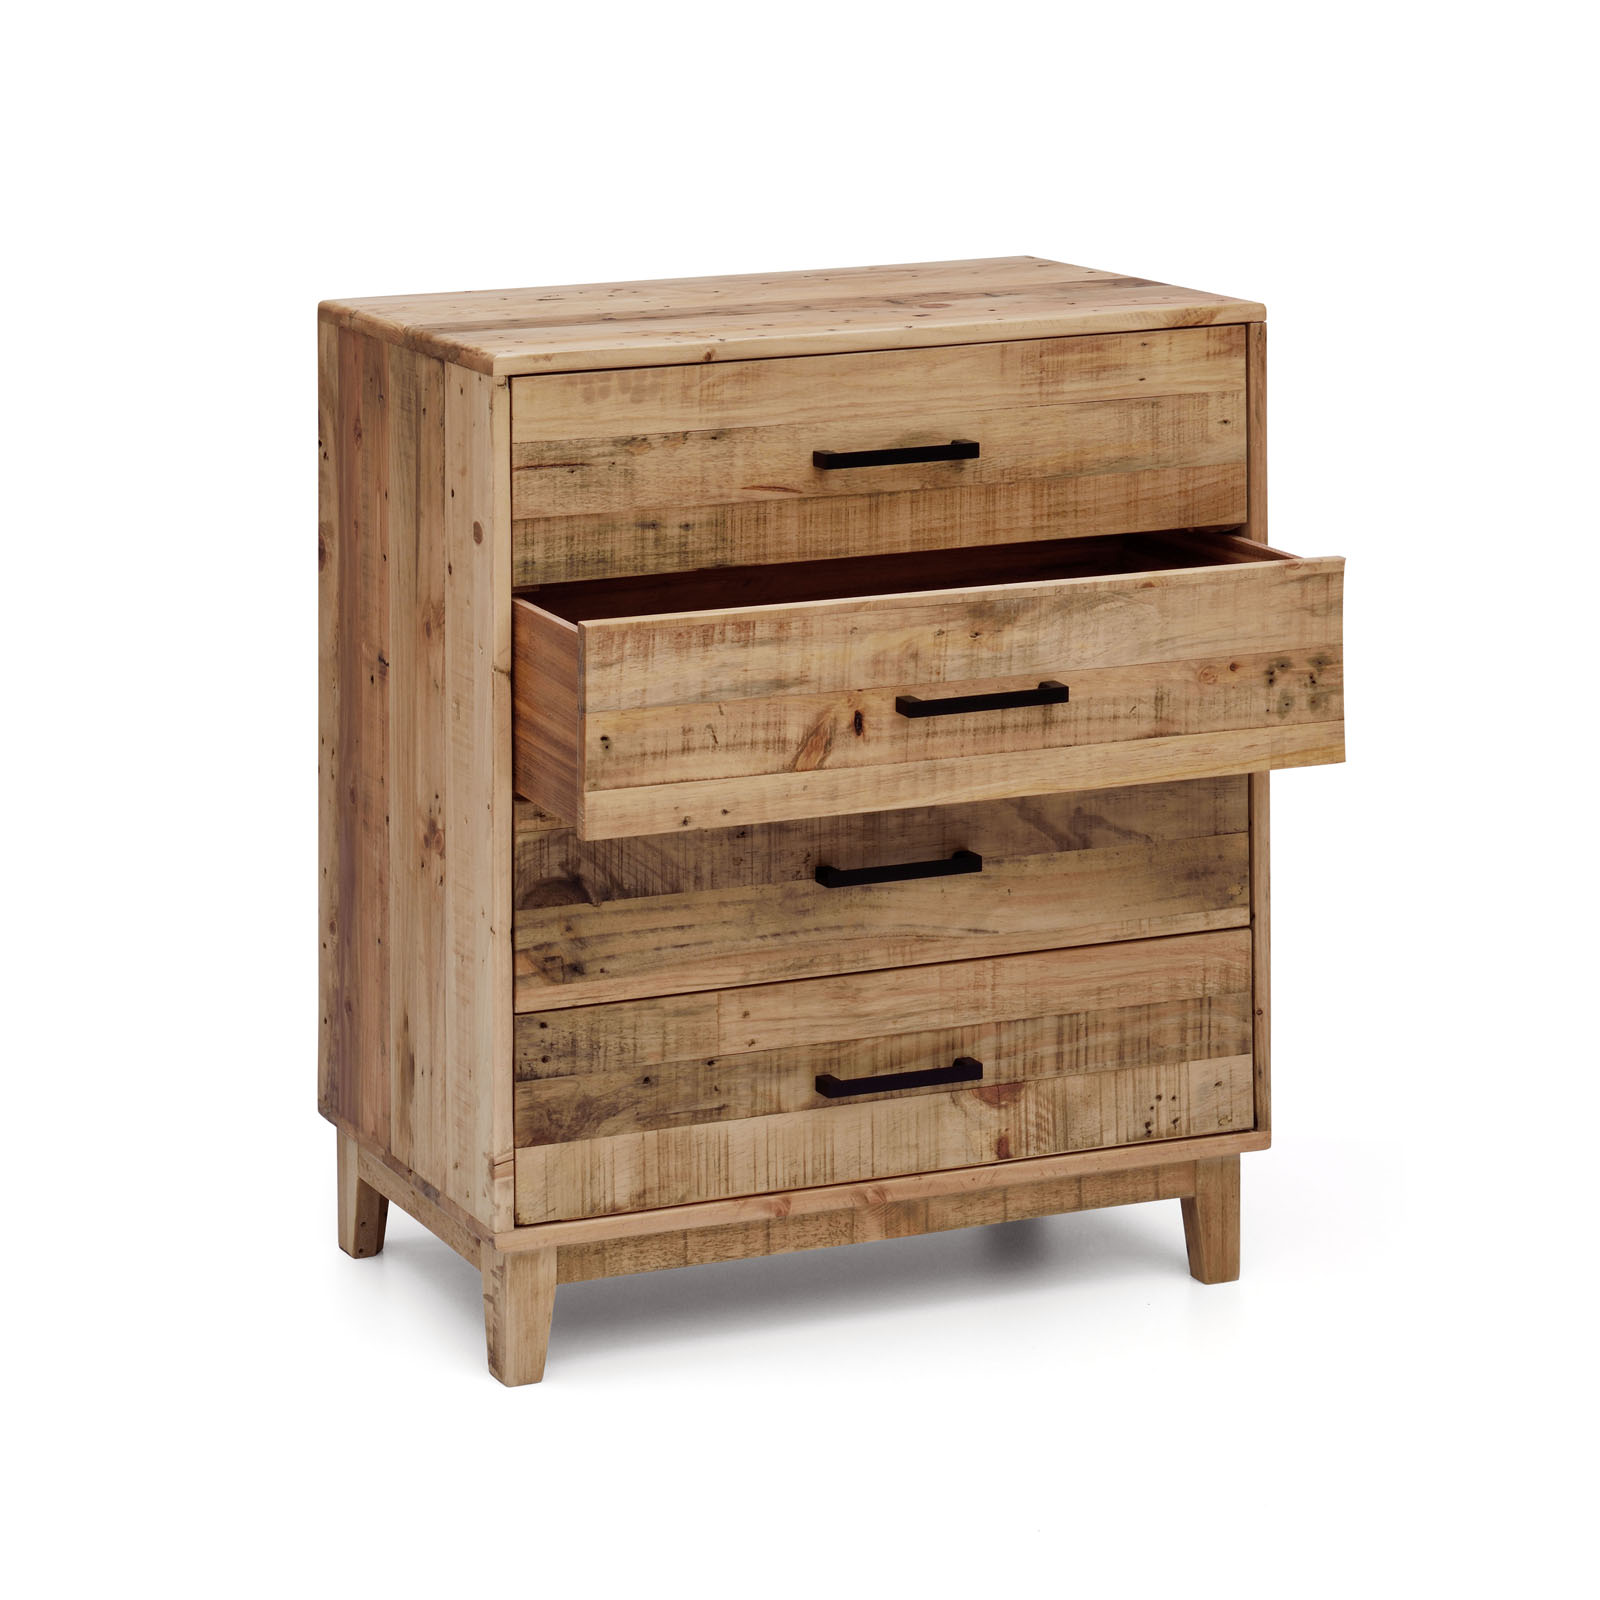 Portland solid recycled pine timber chest of 4 drawers Reclaimed wood furniture portland